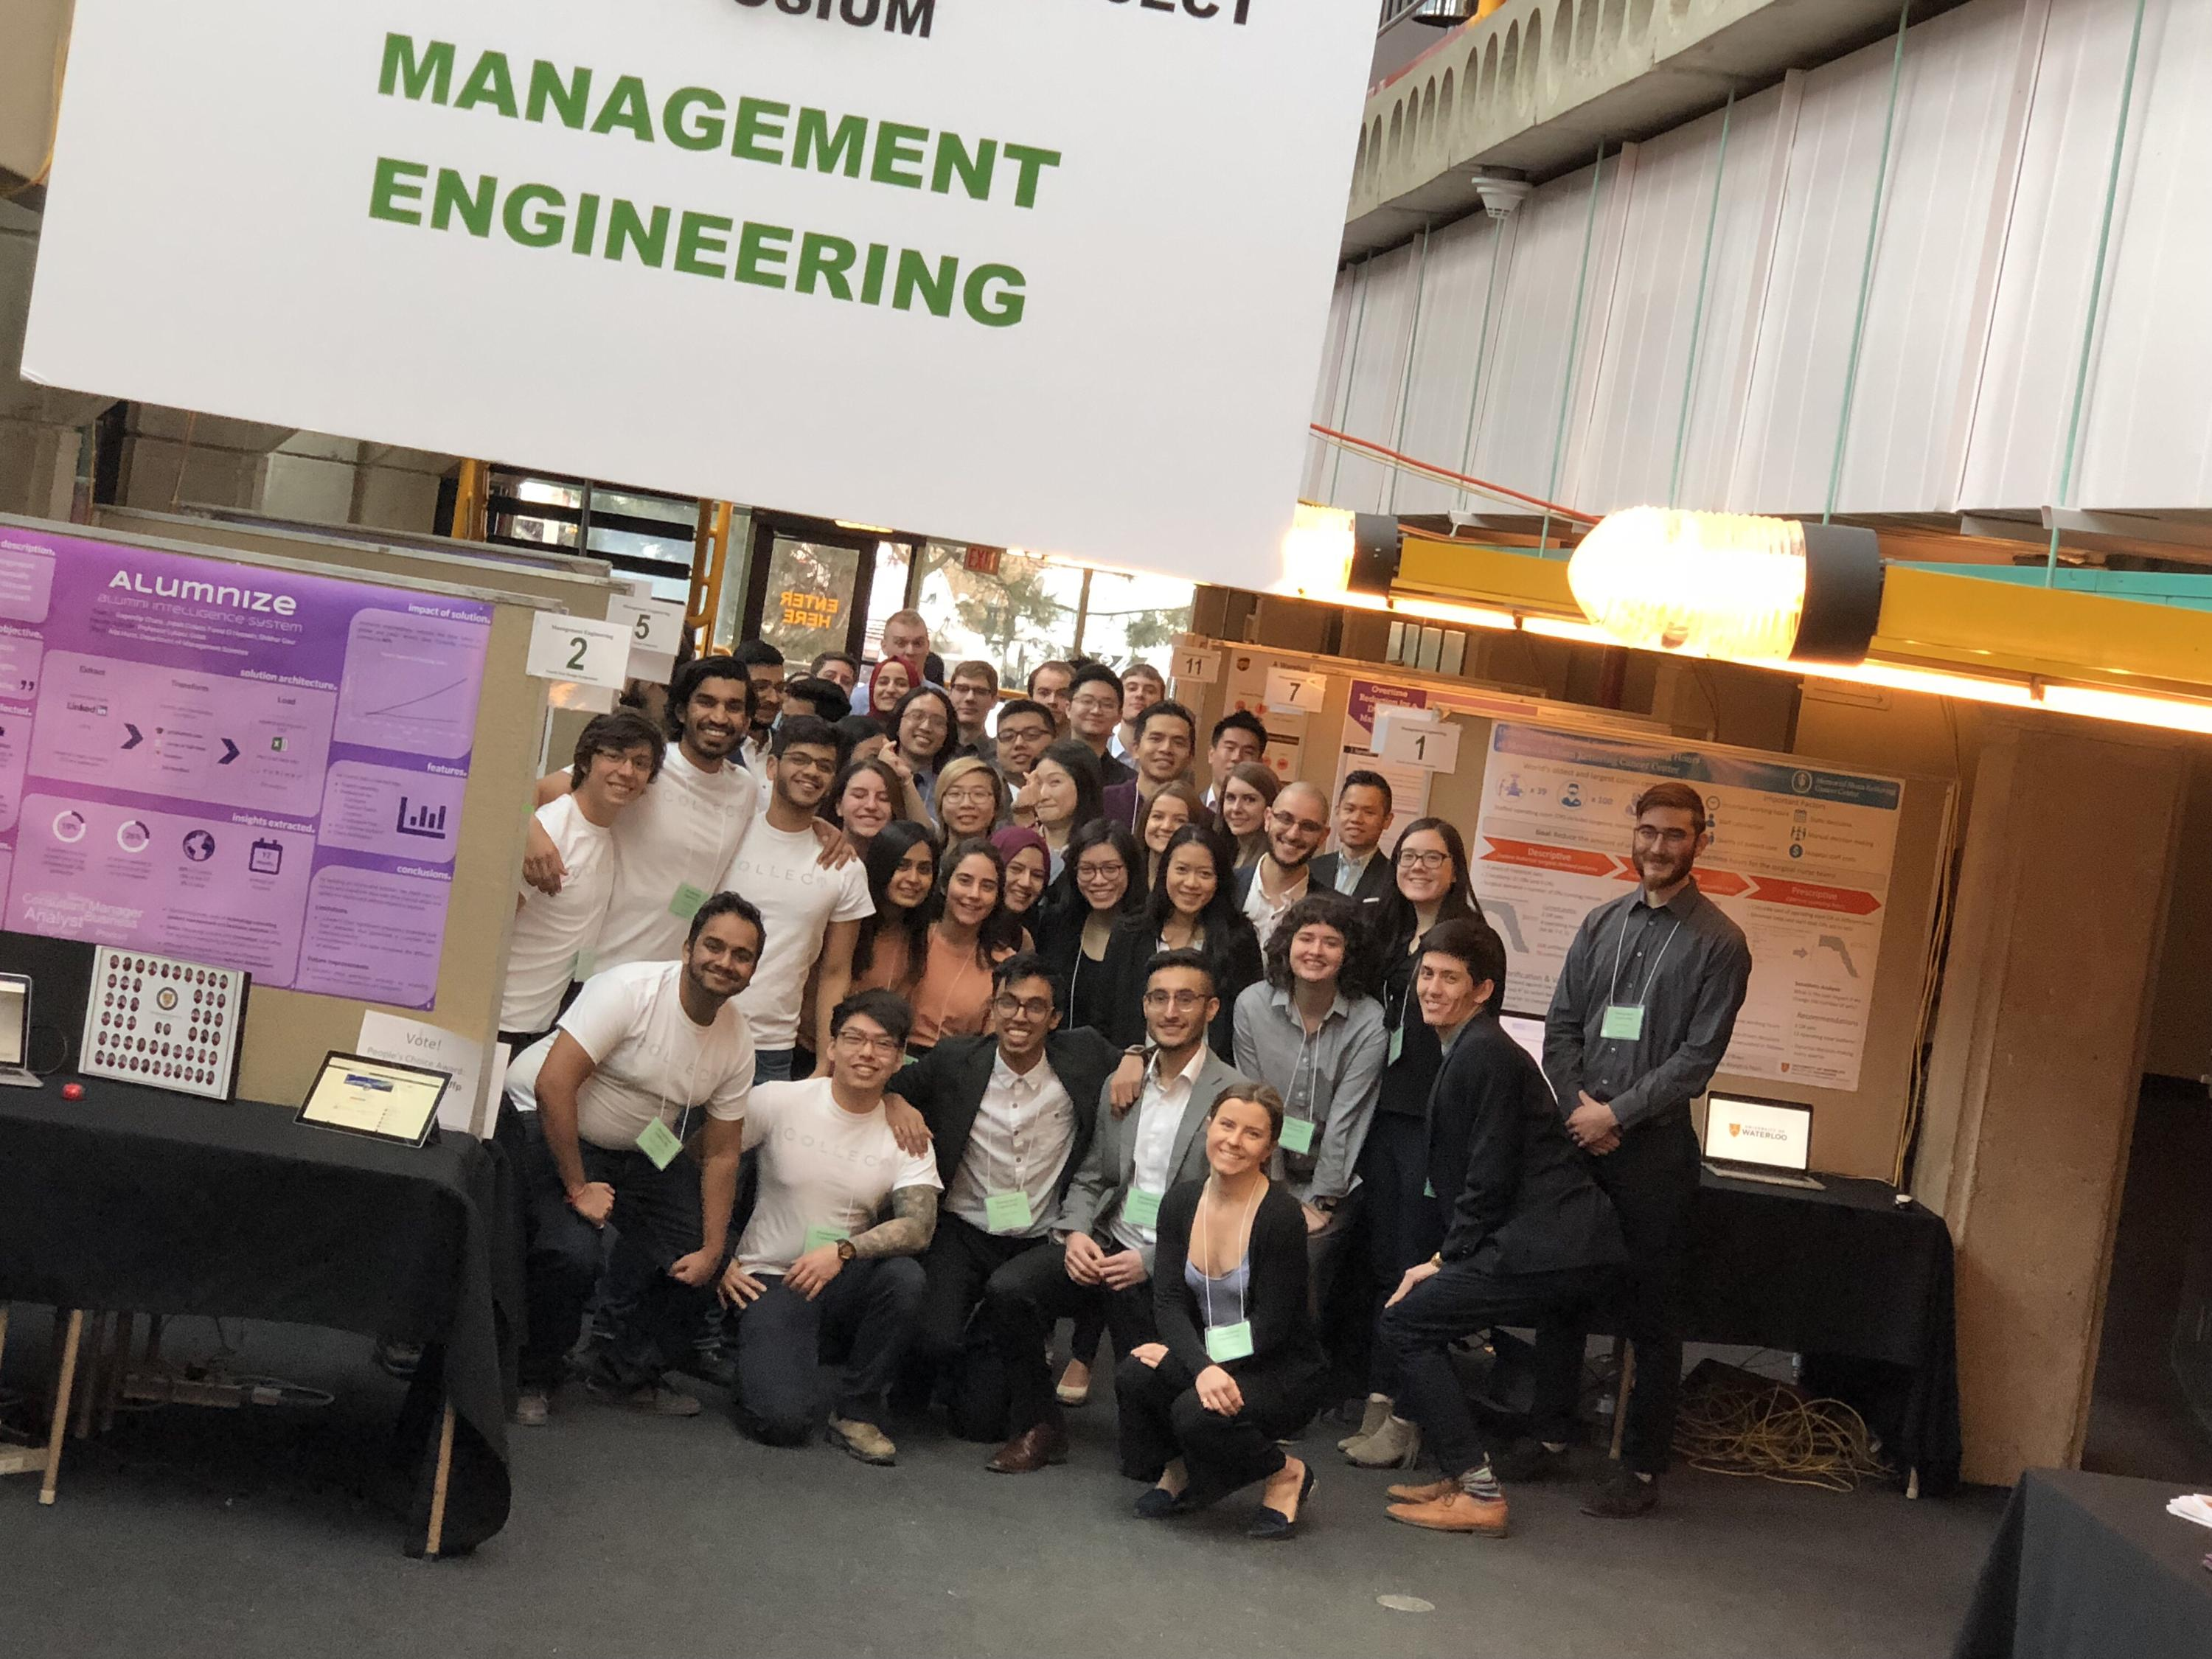 Management engineering class at their symposium